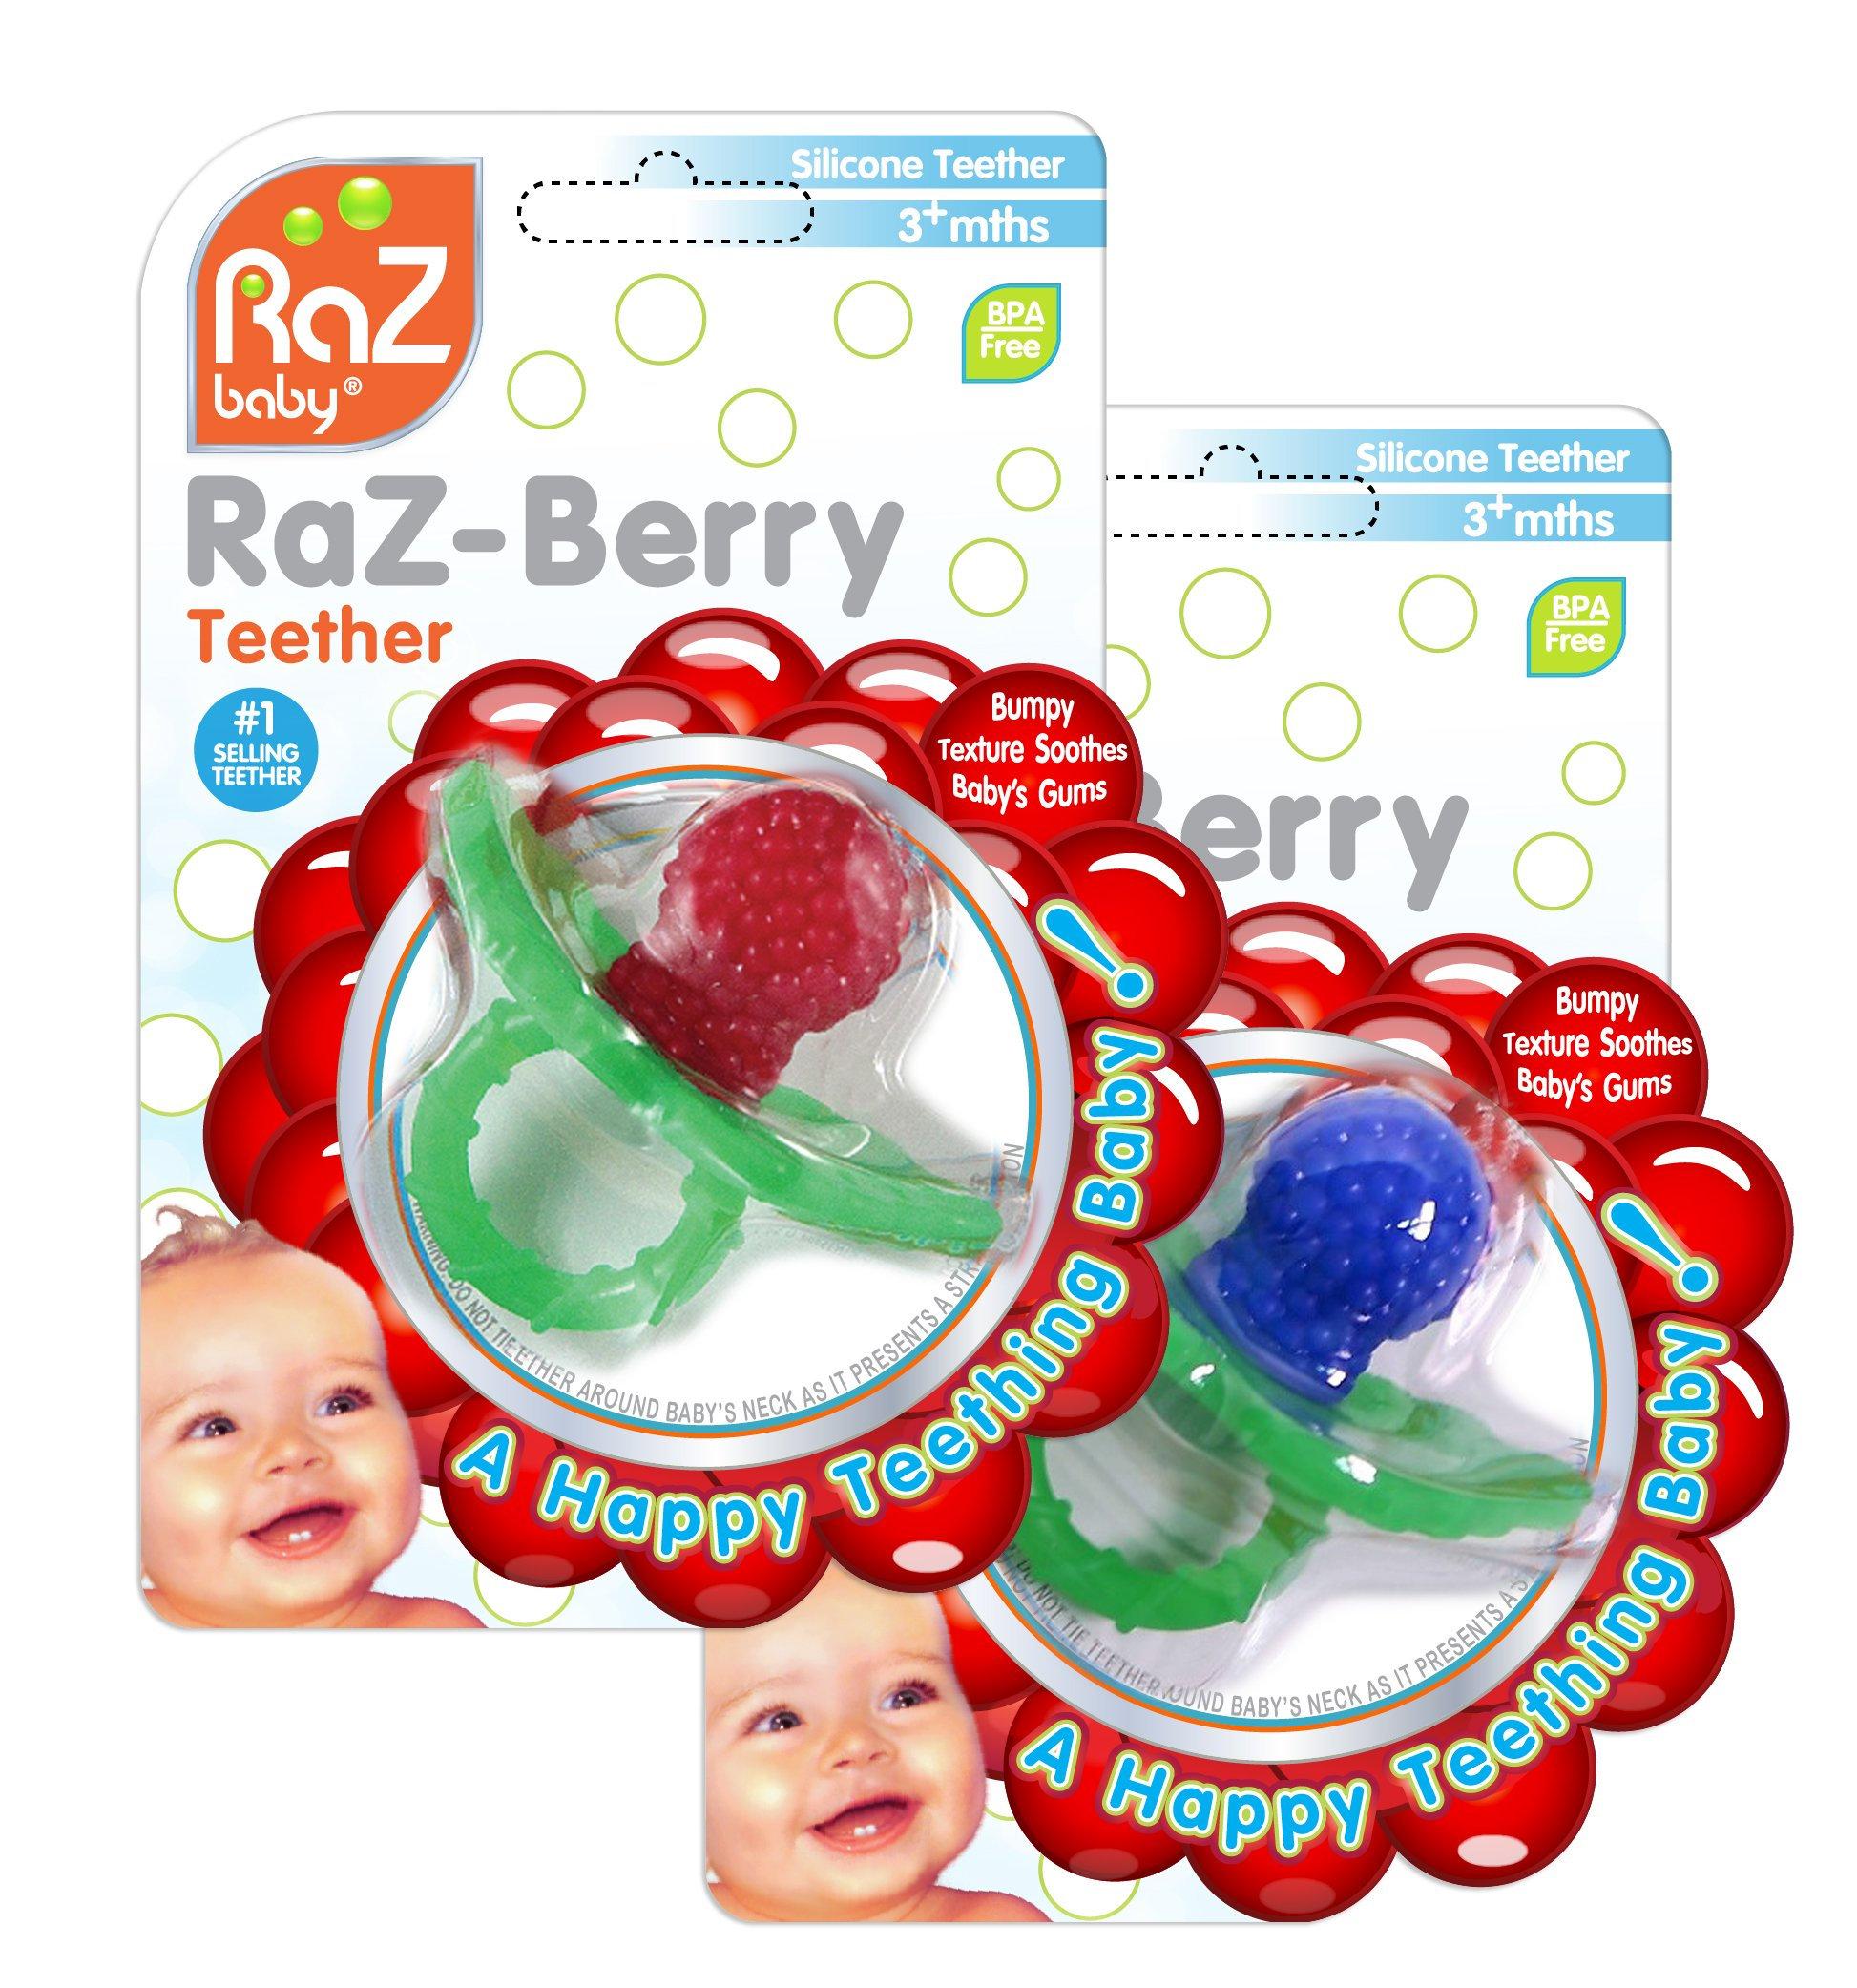 RaZbaby RaZ-Berry Silicone Teether Double Pack Red   Blue Multi-texture a4d5dfc53